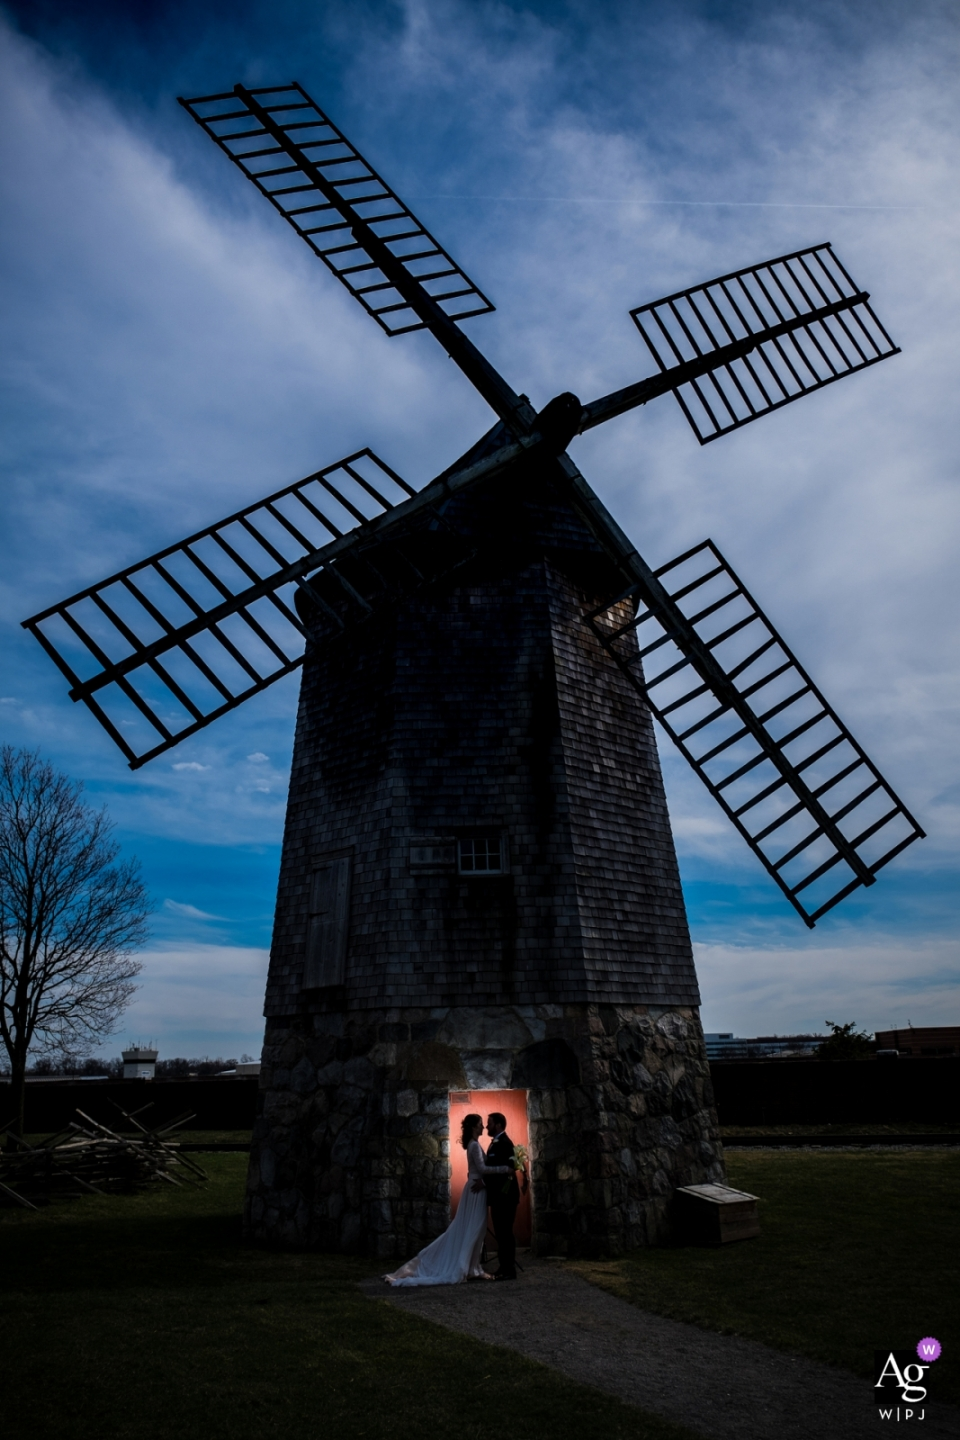 Evening silhouette wedding portrait of the couple lit in the doorway of a windmill at Greenfield Village, Michigan | The Henry Ford Museum - Dearborn, MI